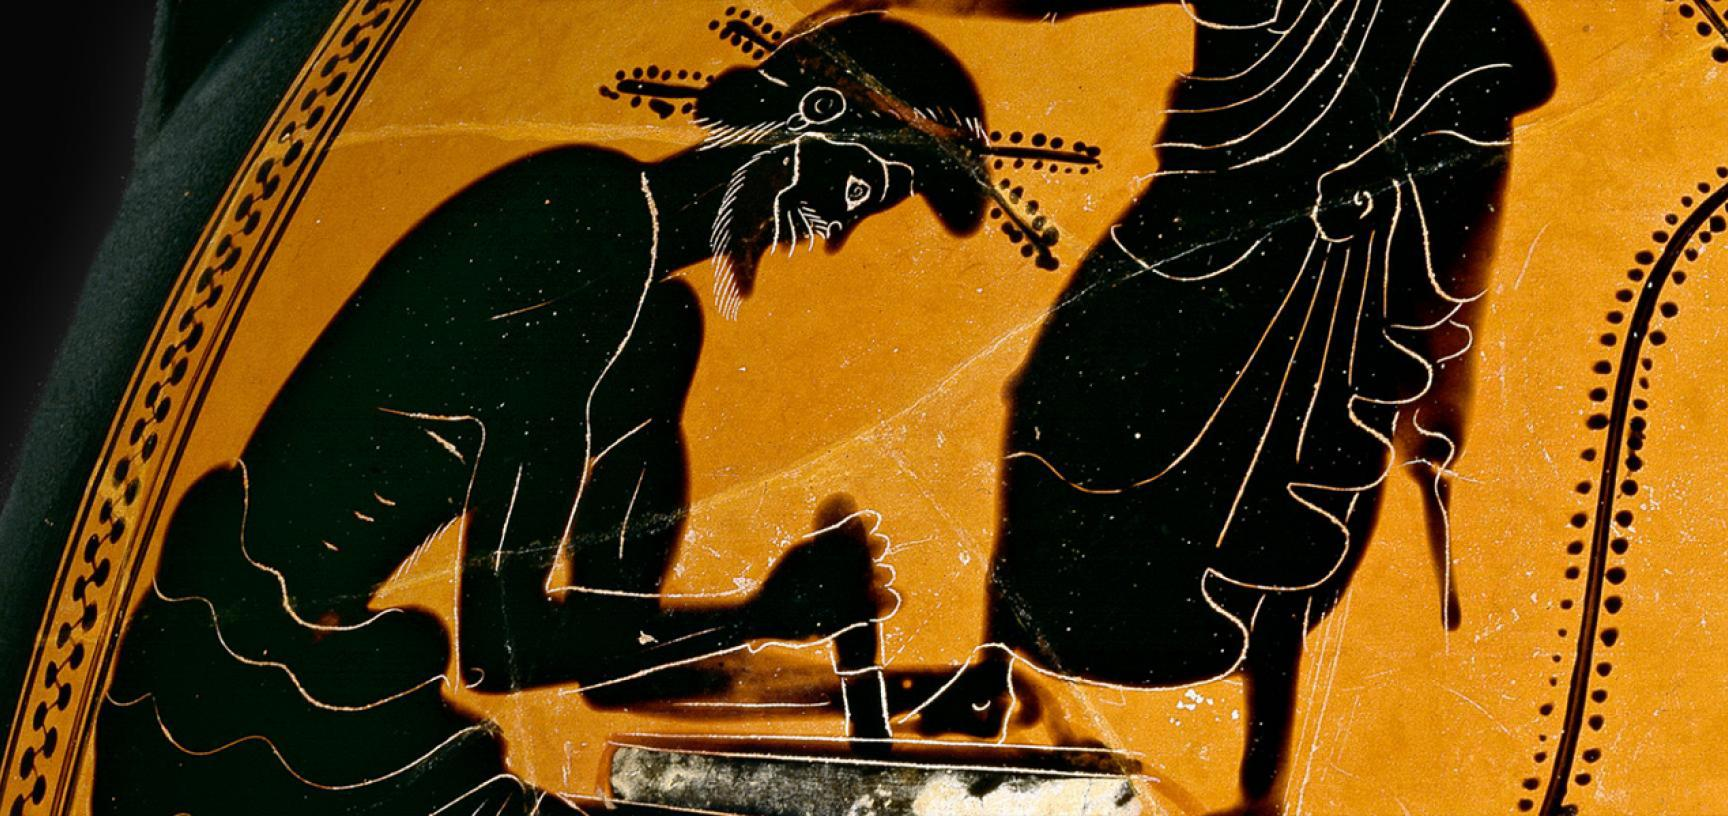 SHOEMAKER VASE (detail) from the Ashmolean collections